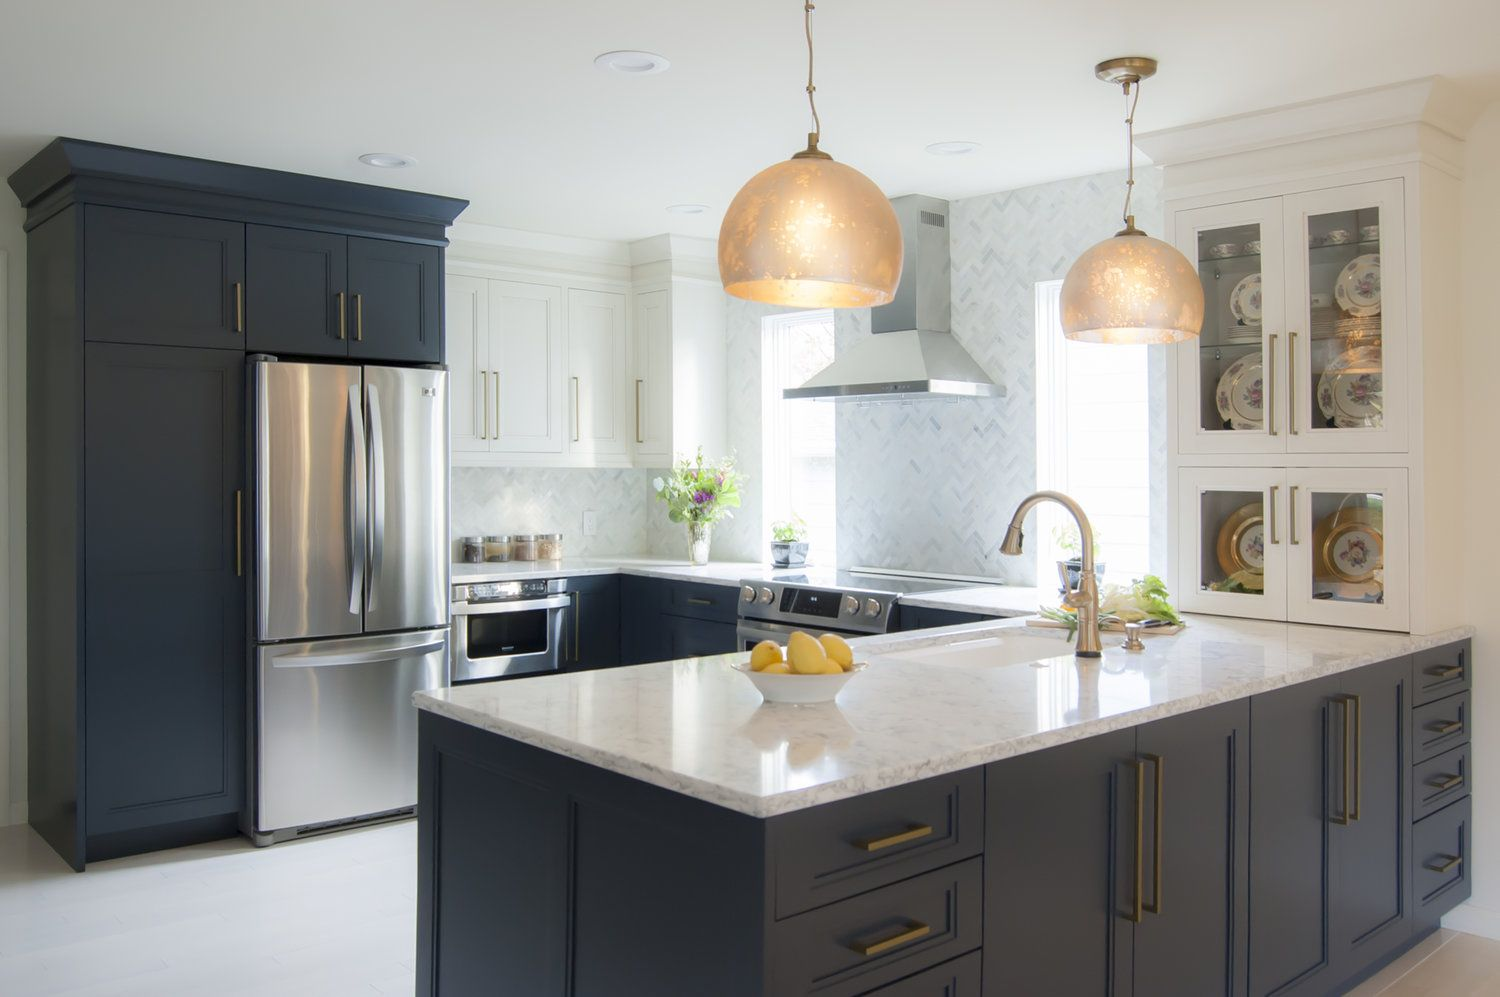 Navy Cabinets With Quartz Countertops Peninsula With Pendant